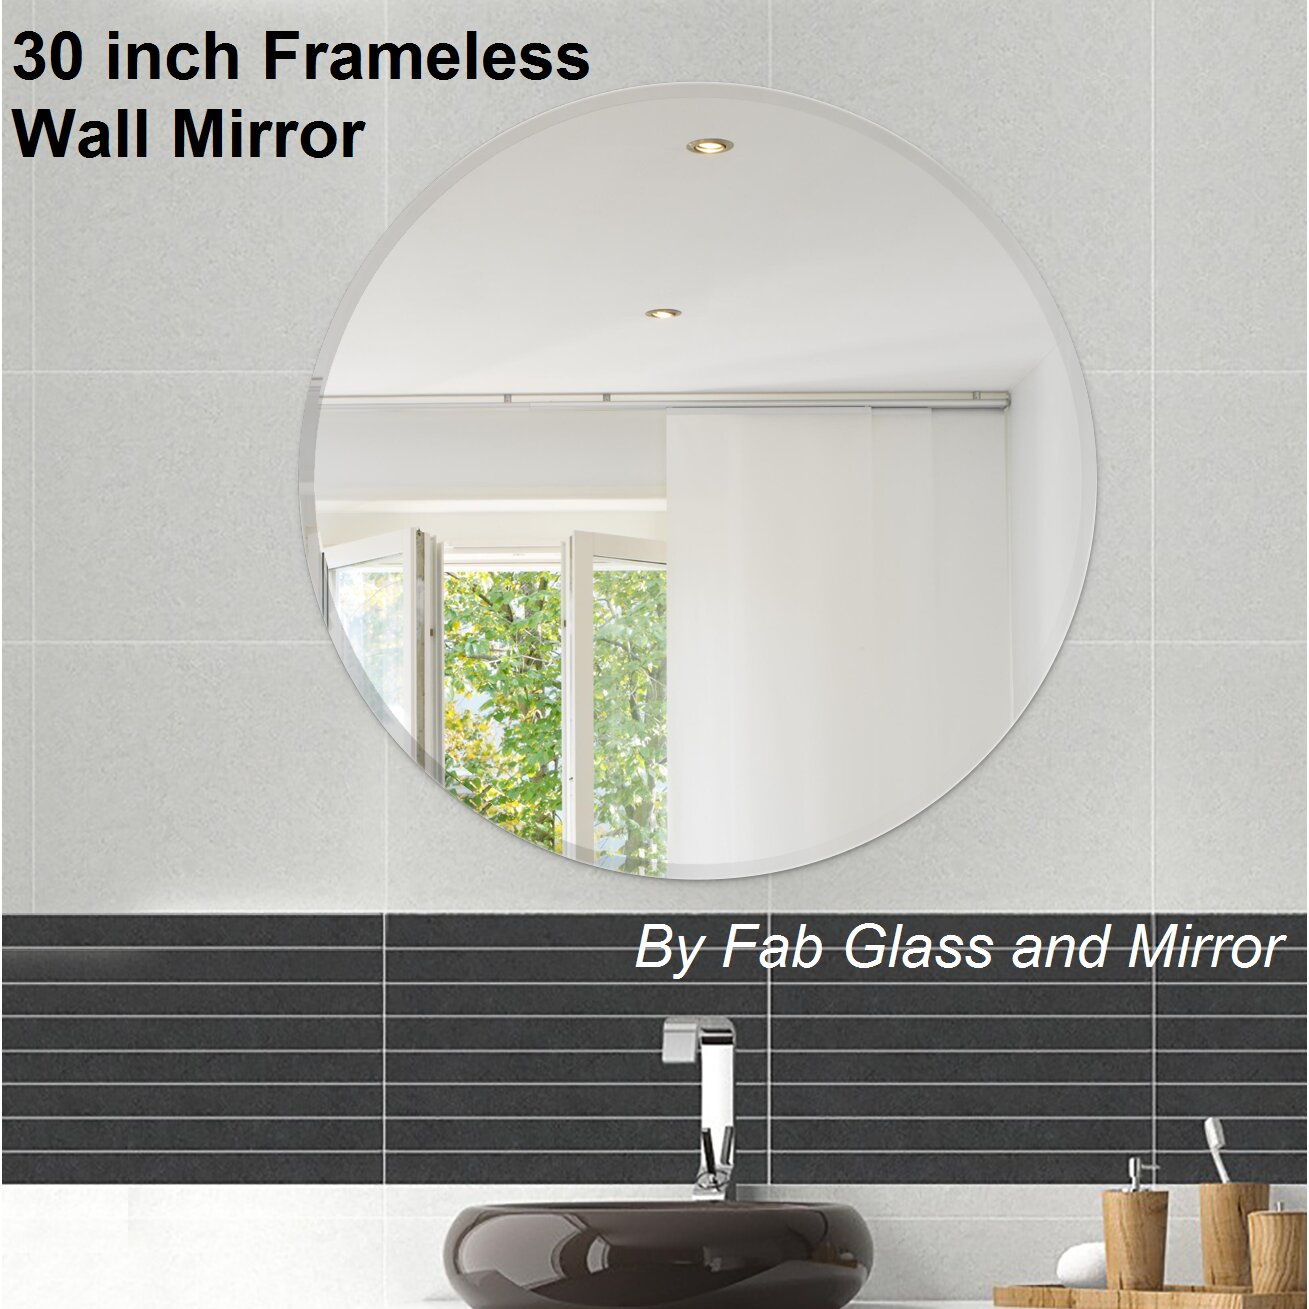 fab glass and mirror beveled polished frameless wall mirror with hooks wayfair. Black Bedroom Furniture Sets. Home Design Ideas